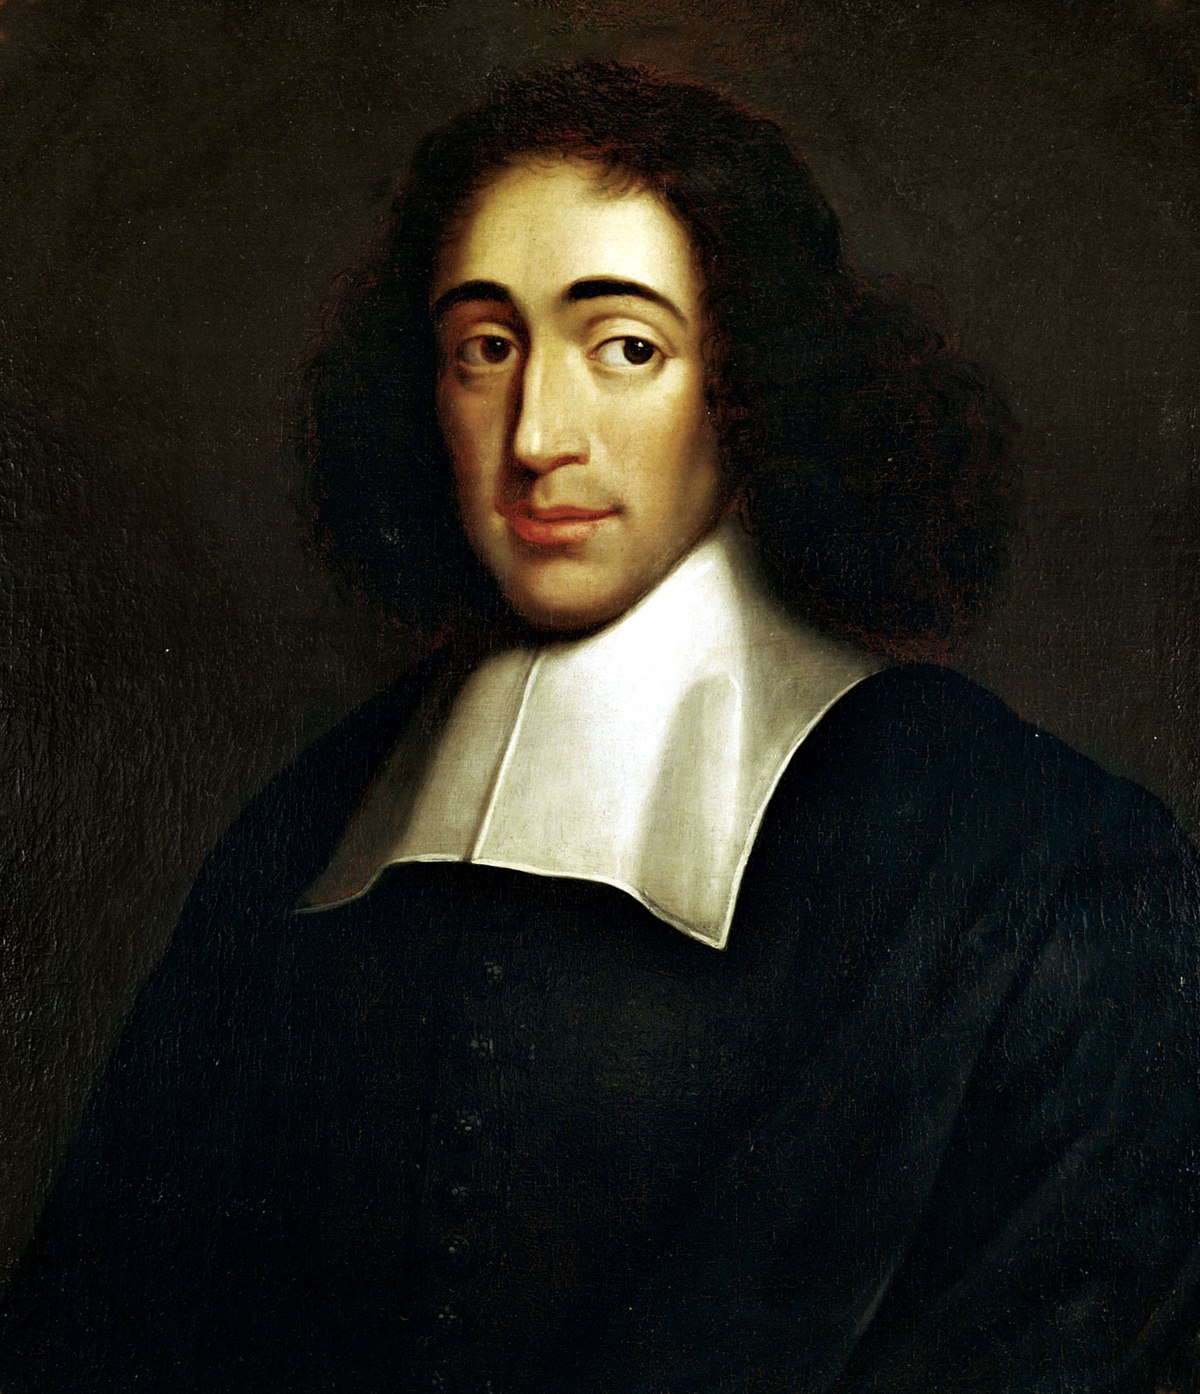 """You are currently viewing Great Jewish Thinkers-Spinoza """"Whatsoever is, is in God, and without God nothing can be, or be conceived"""" (3 Minute read)"""